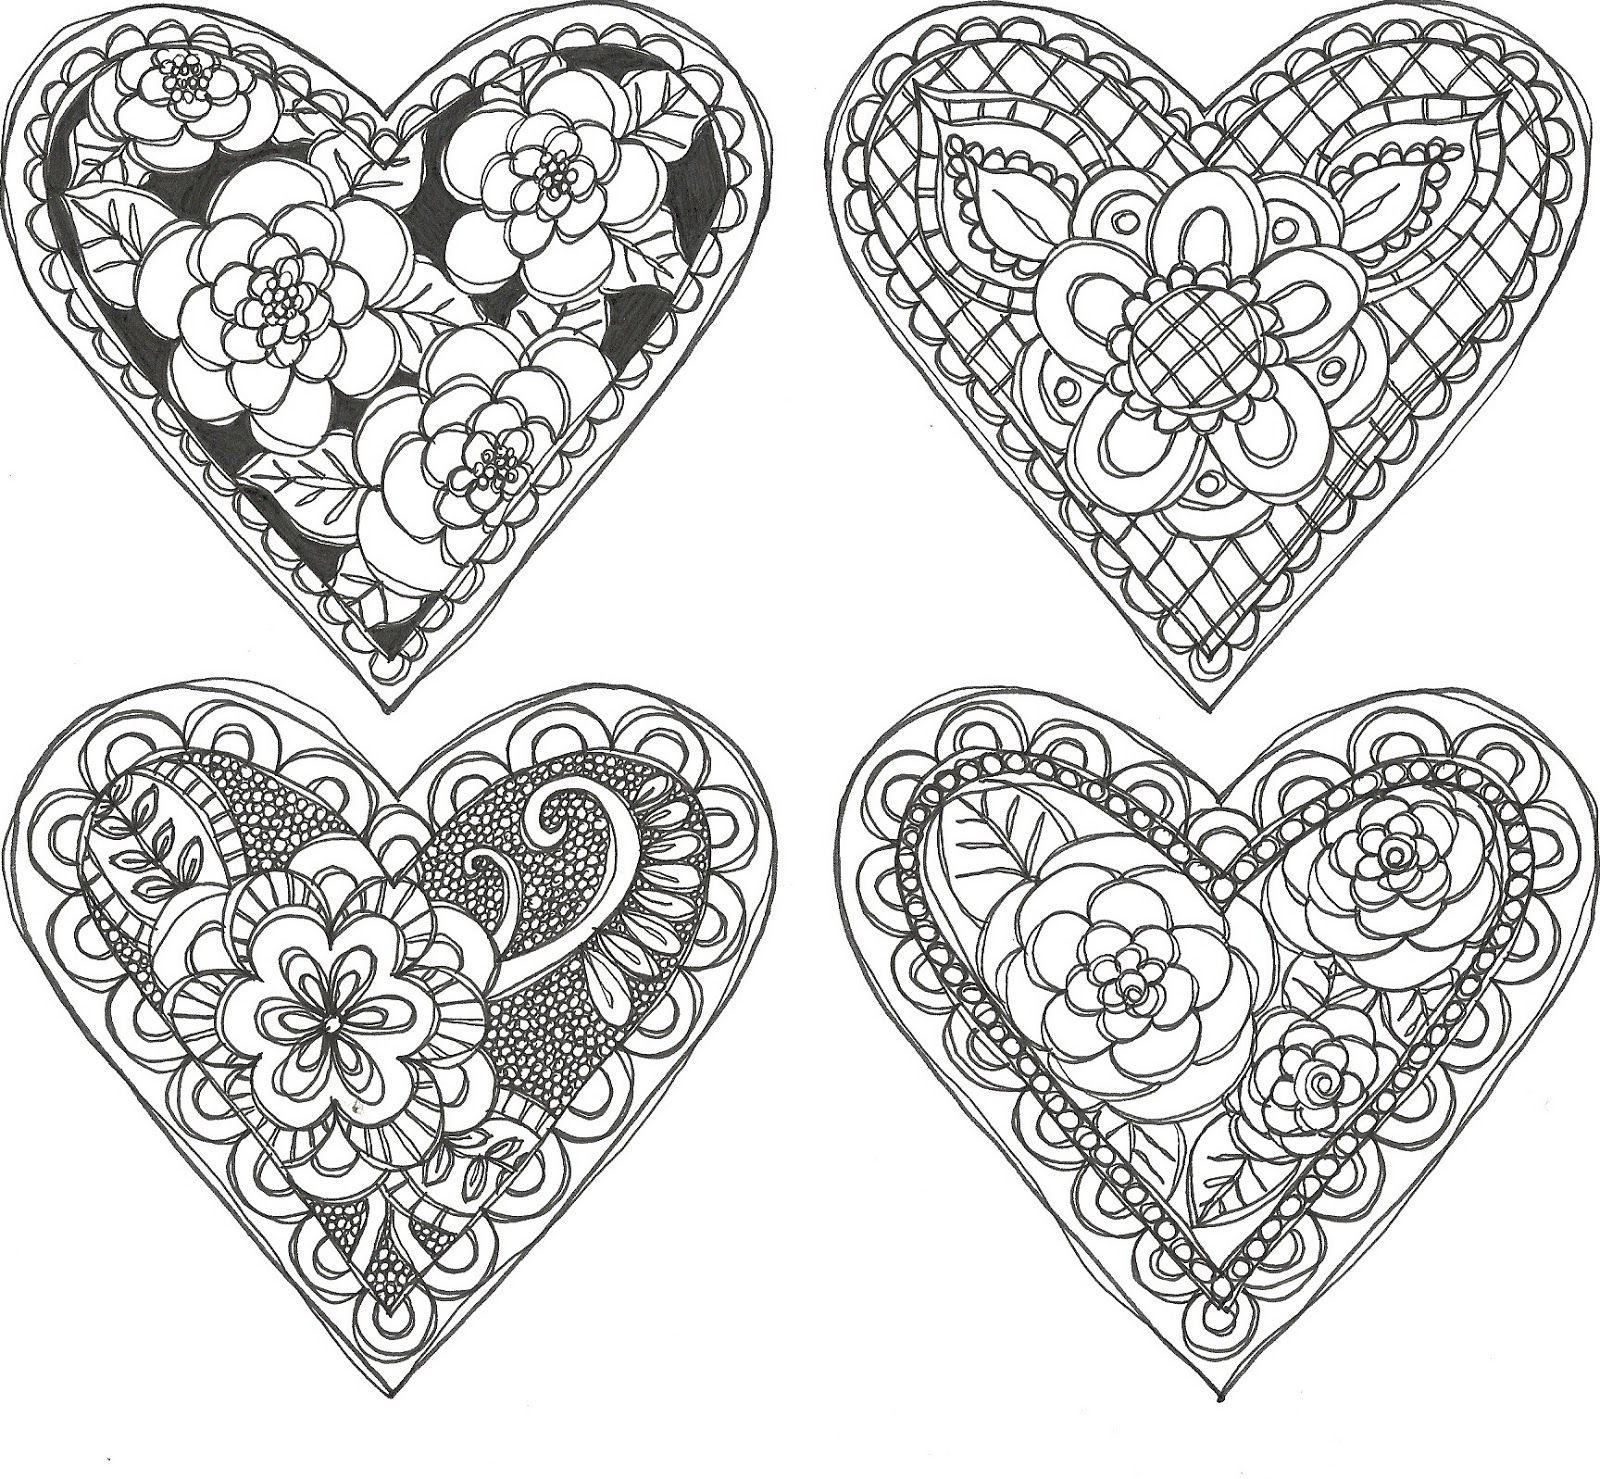 Pieces of me doodle valentines crafty ideas pinterest doodles